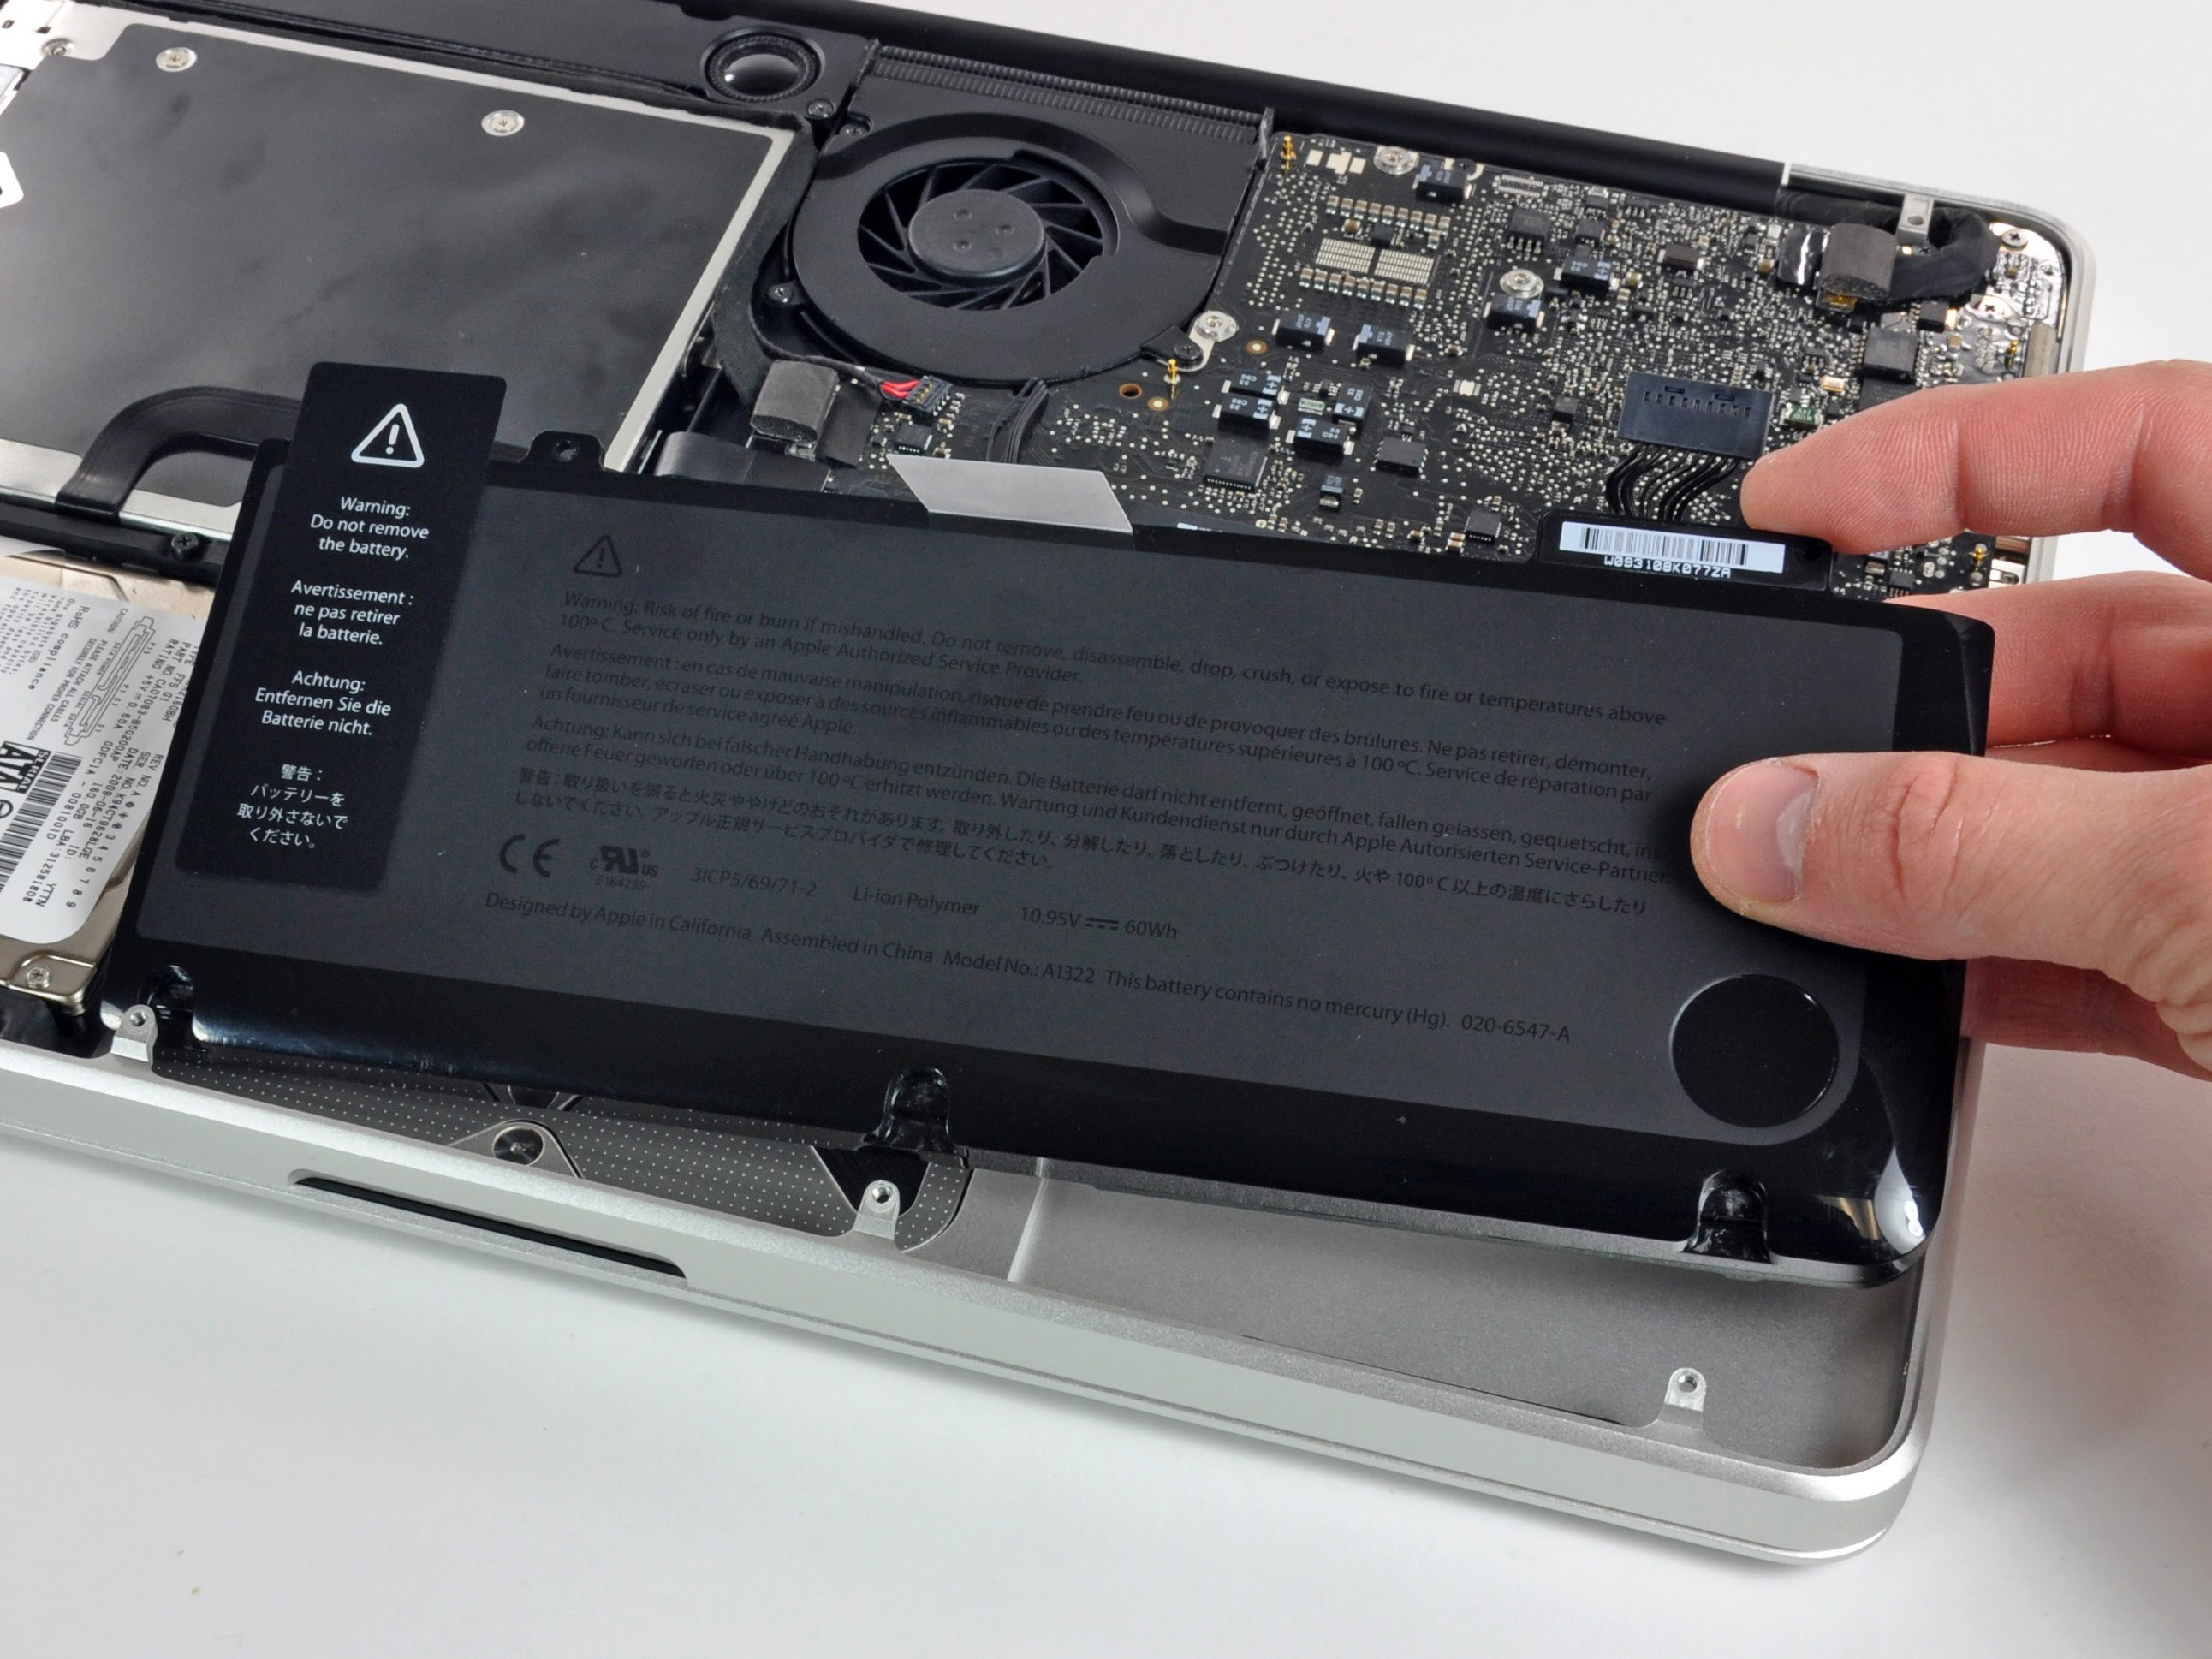 batterie macbook pro a1286